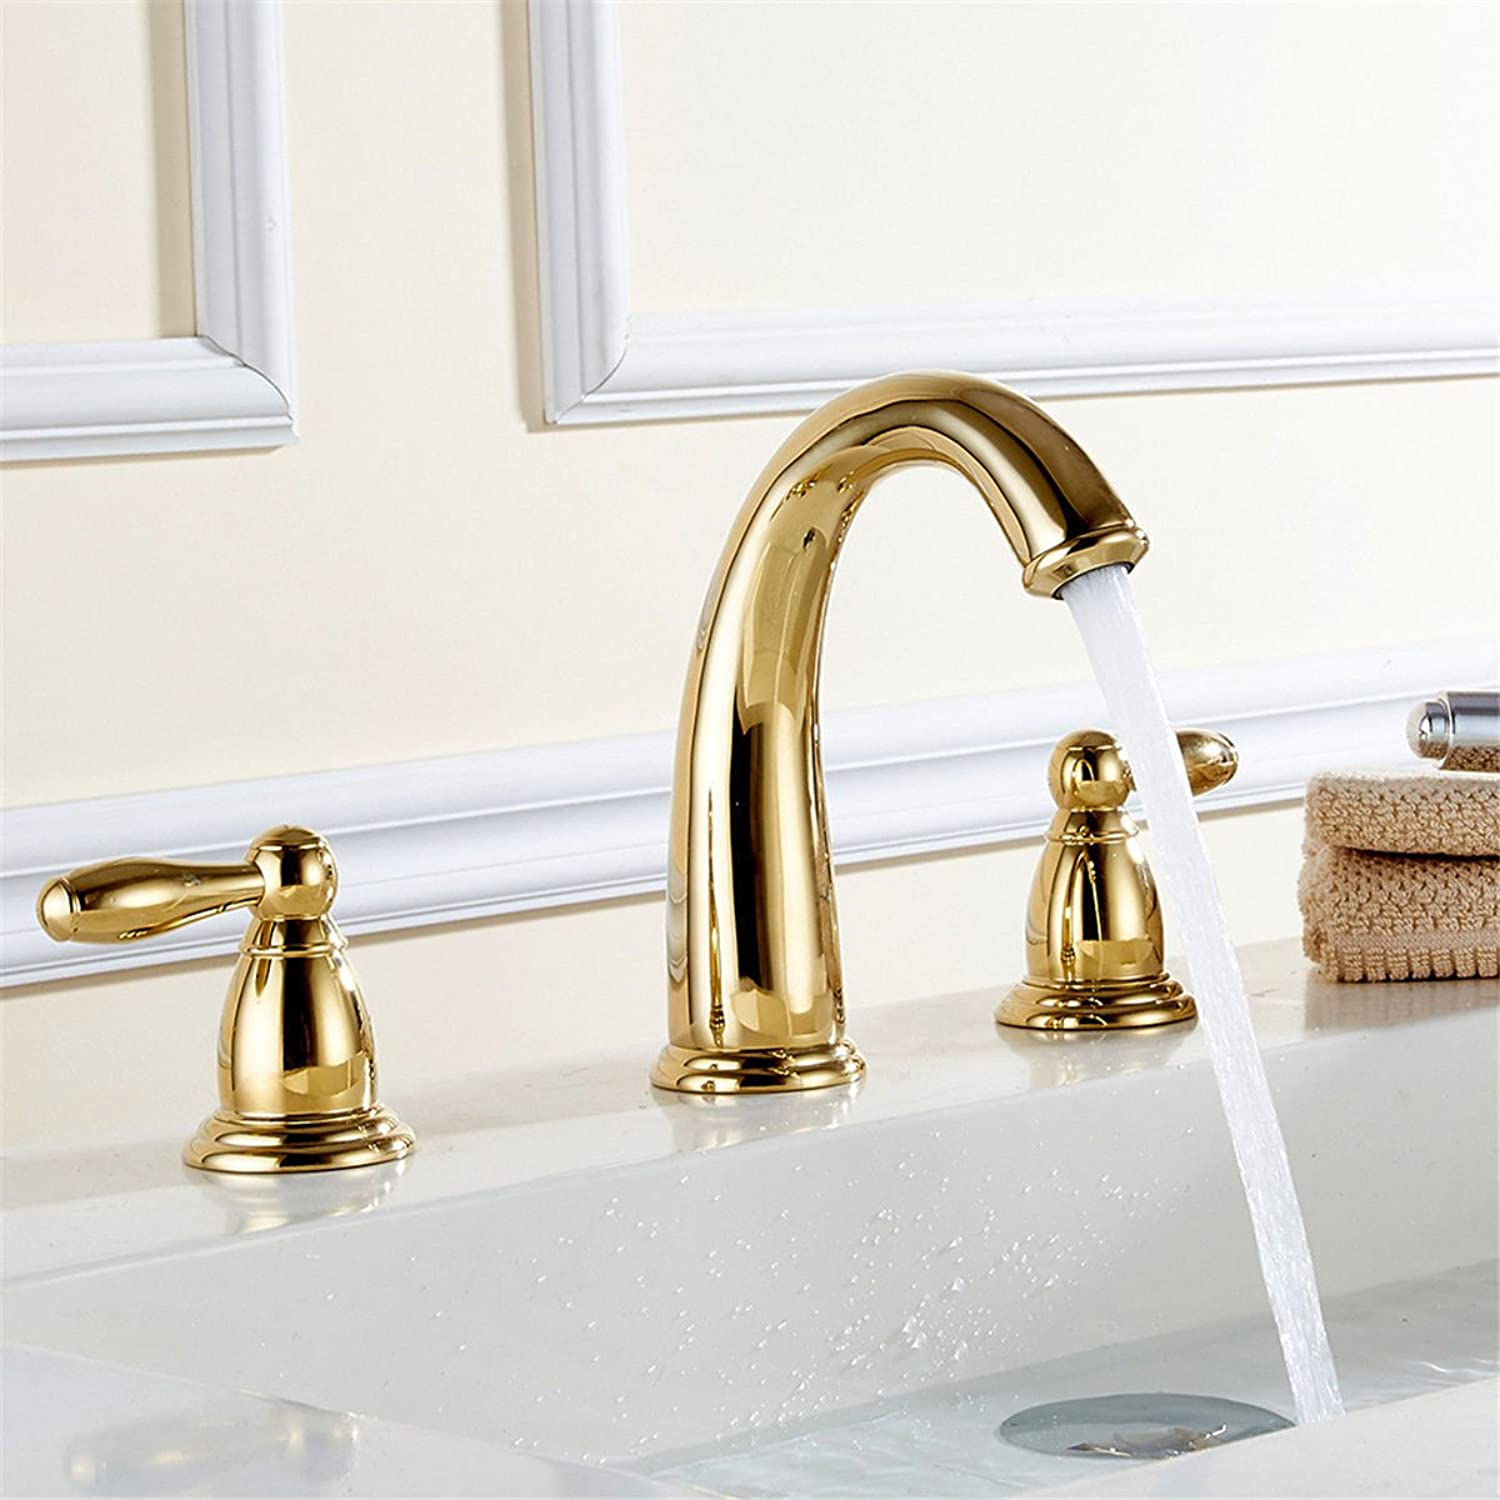 Antique Brass Bathroom Basin Faucet   Bathroom Sink Faucet   Copper Faucet   Faucet, Washbasin, Counter Basin Faucet Hot and Cold Faucet Basin faucet Bathroom Sink Tap with Bathroom Basin Mixer Tap Bathroom Mixer Tap Bathroom Basin Sink Faucet Bathroom ba